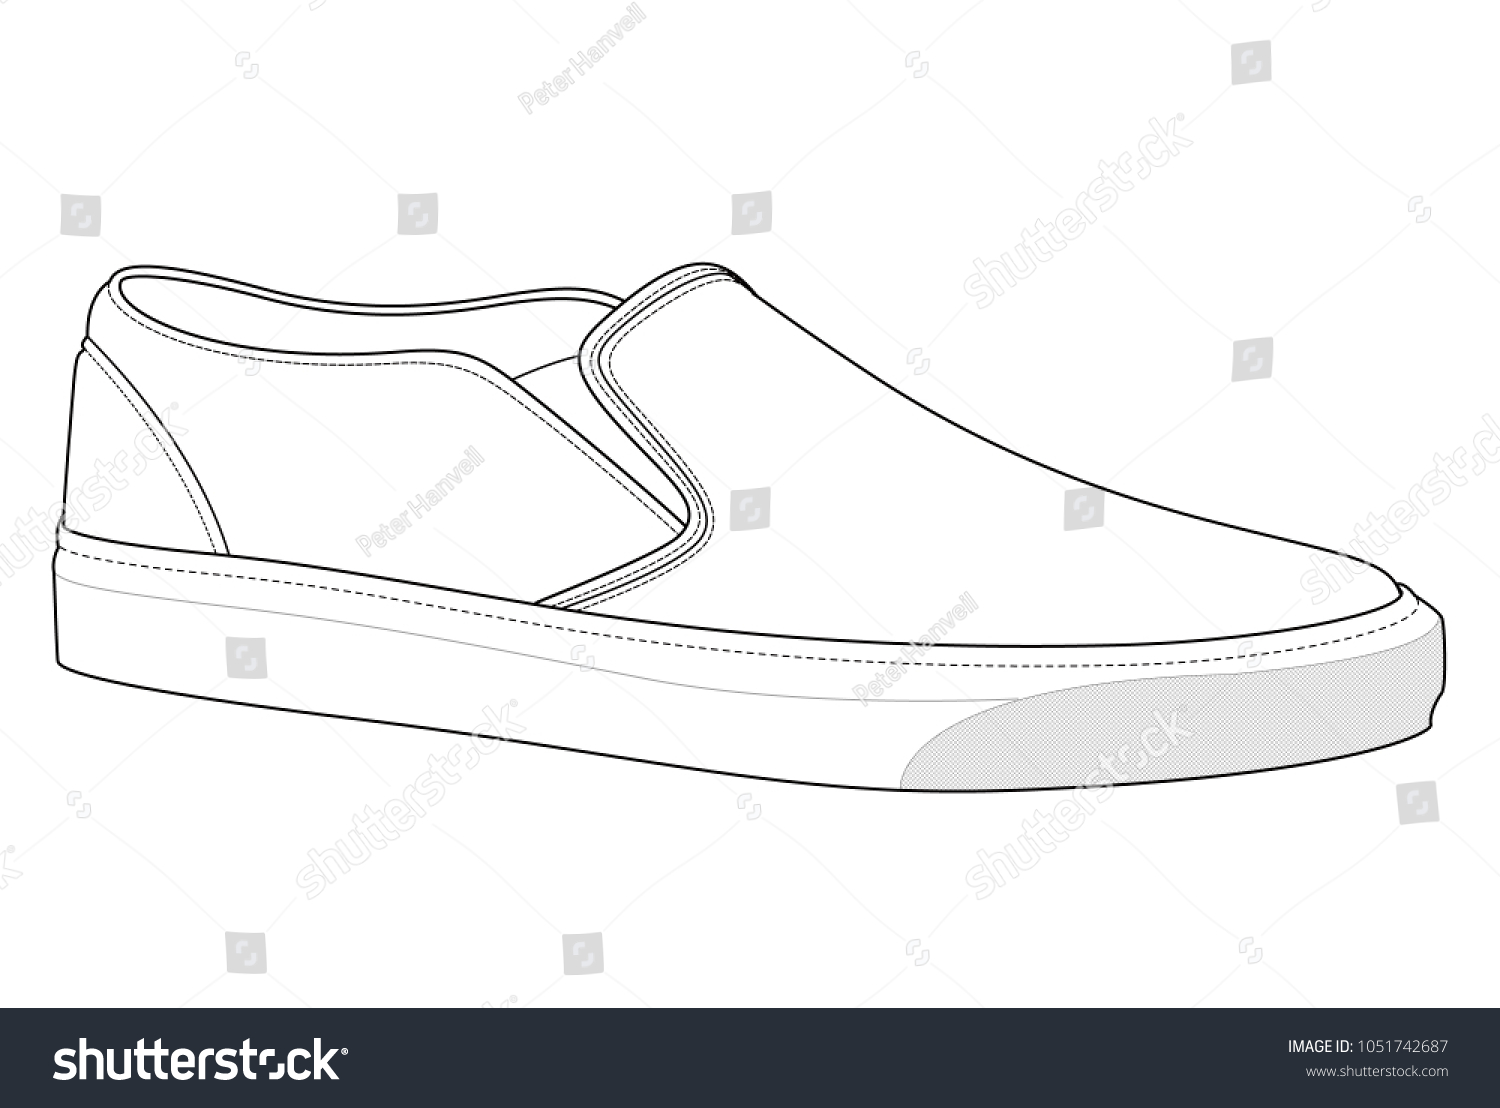 Slipon shoes vector illustration flat sketches stock vector slip on shoes vector illustration flat sketches template maxwellsz